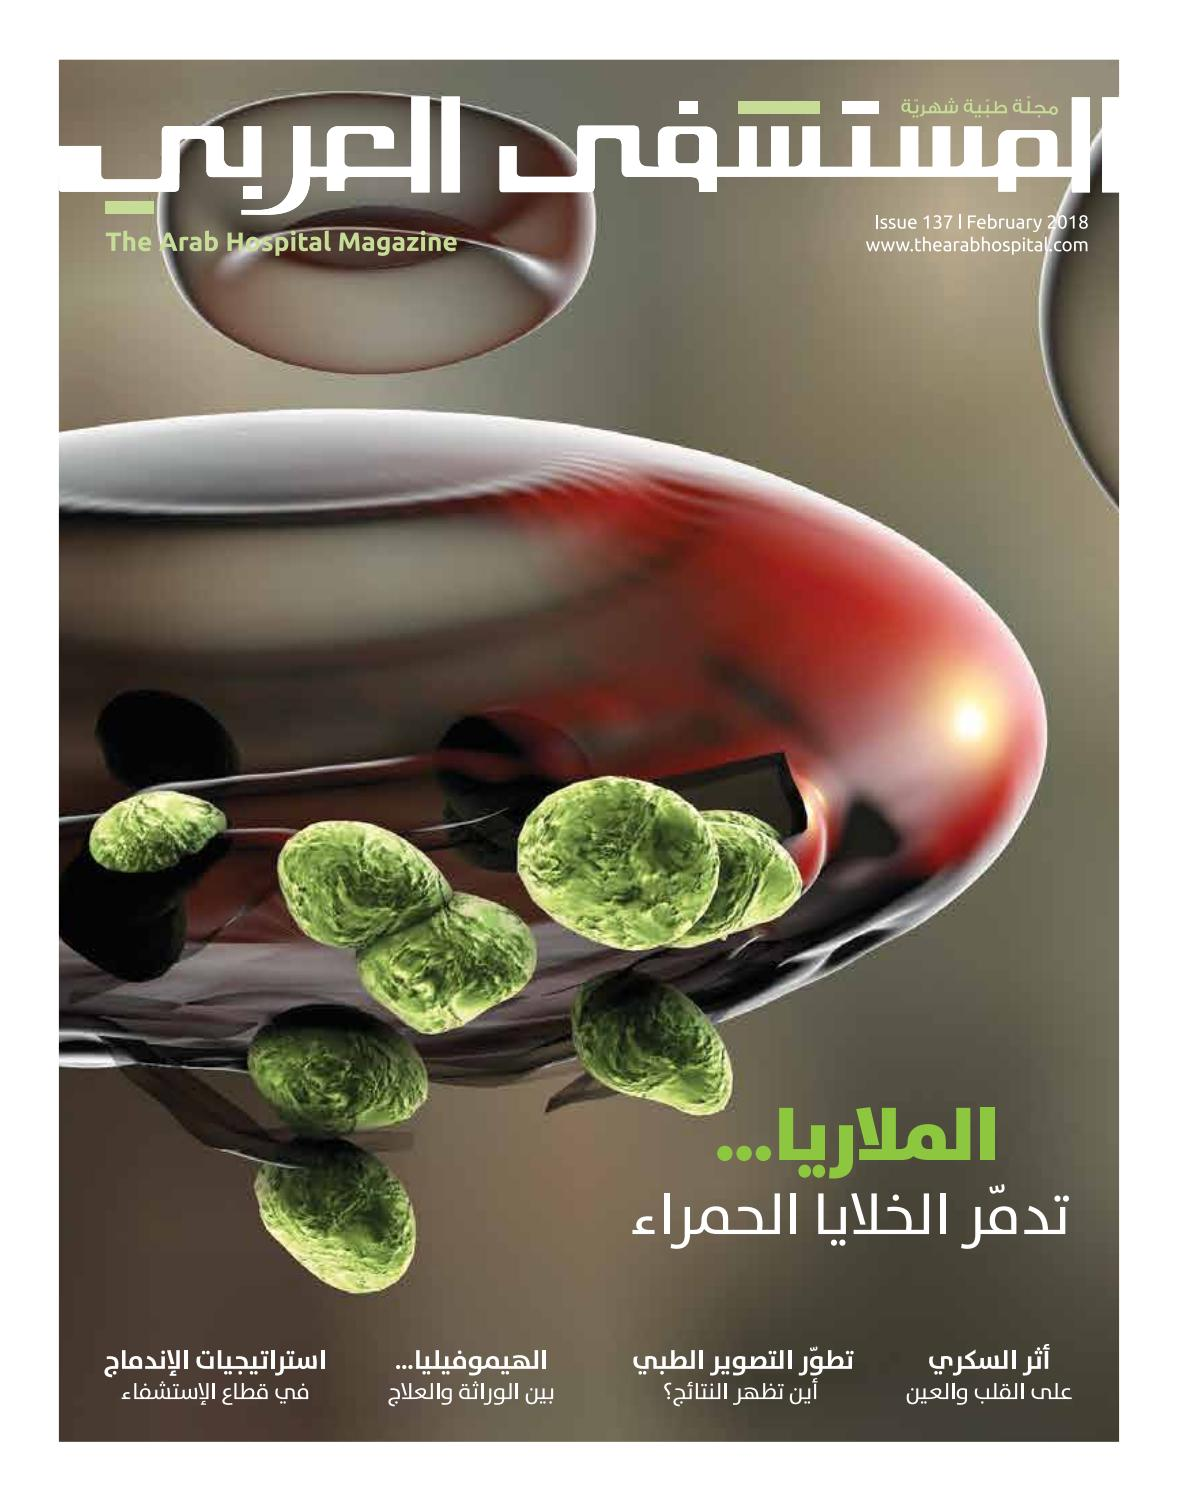 9f45d4d99 The Arab Hospital Magazine issue 137 by The Arab Hospital Magazine - issuu